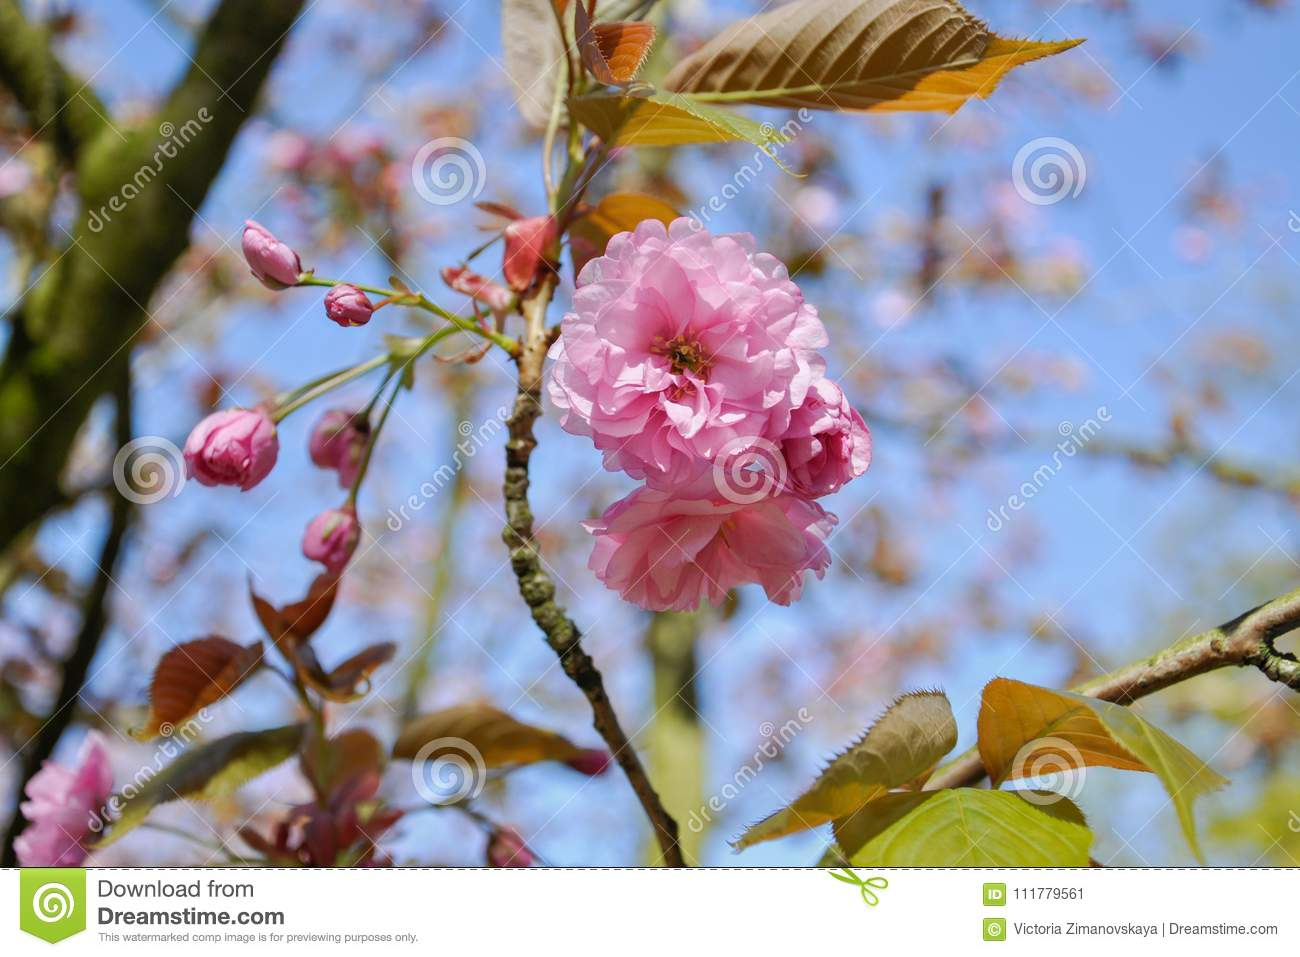 Selective focus close-up photography. Beautiful cherry blossom sakura in spring time over blue sky